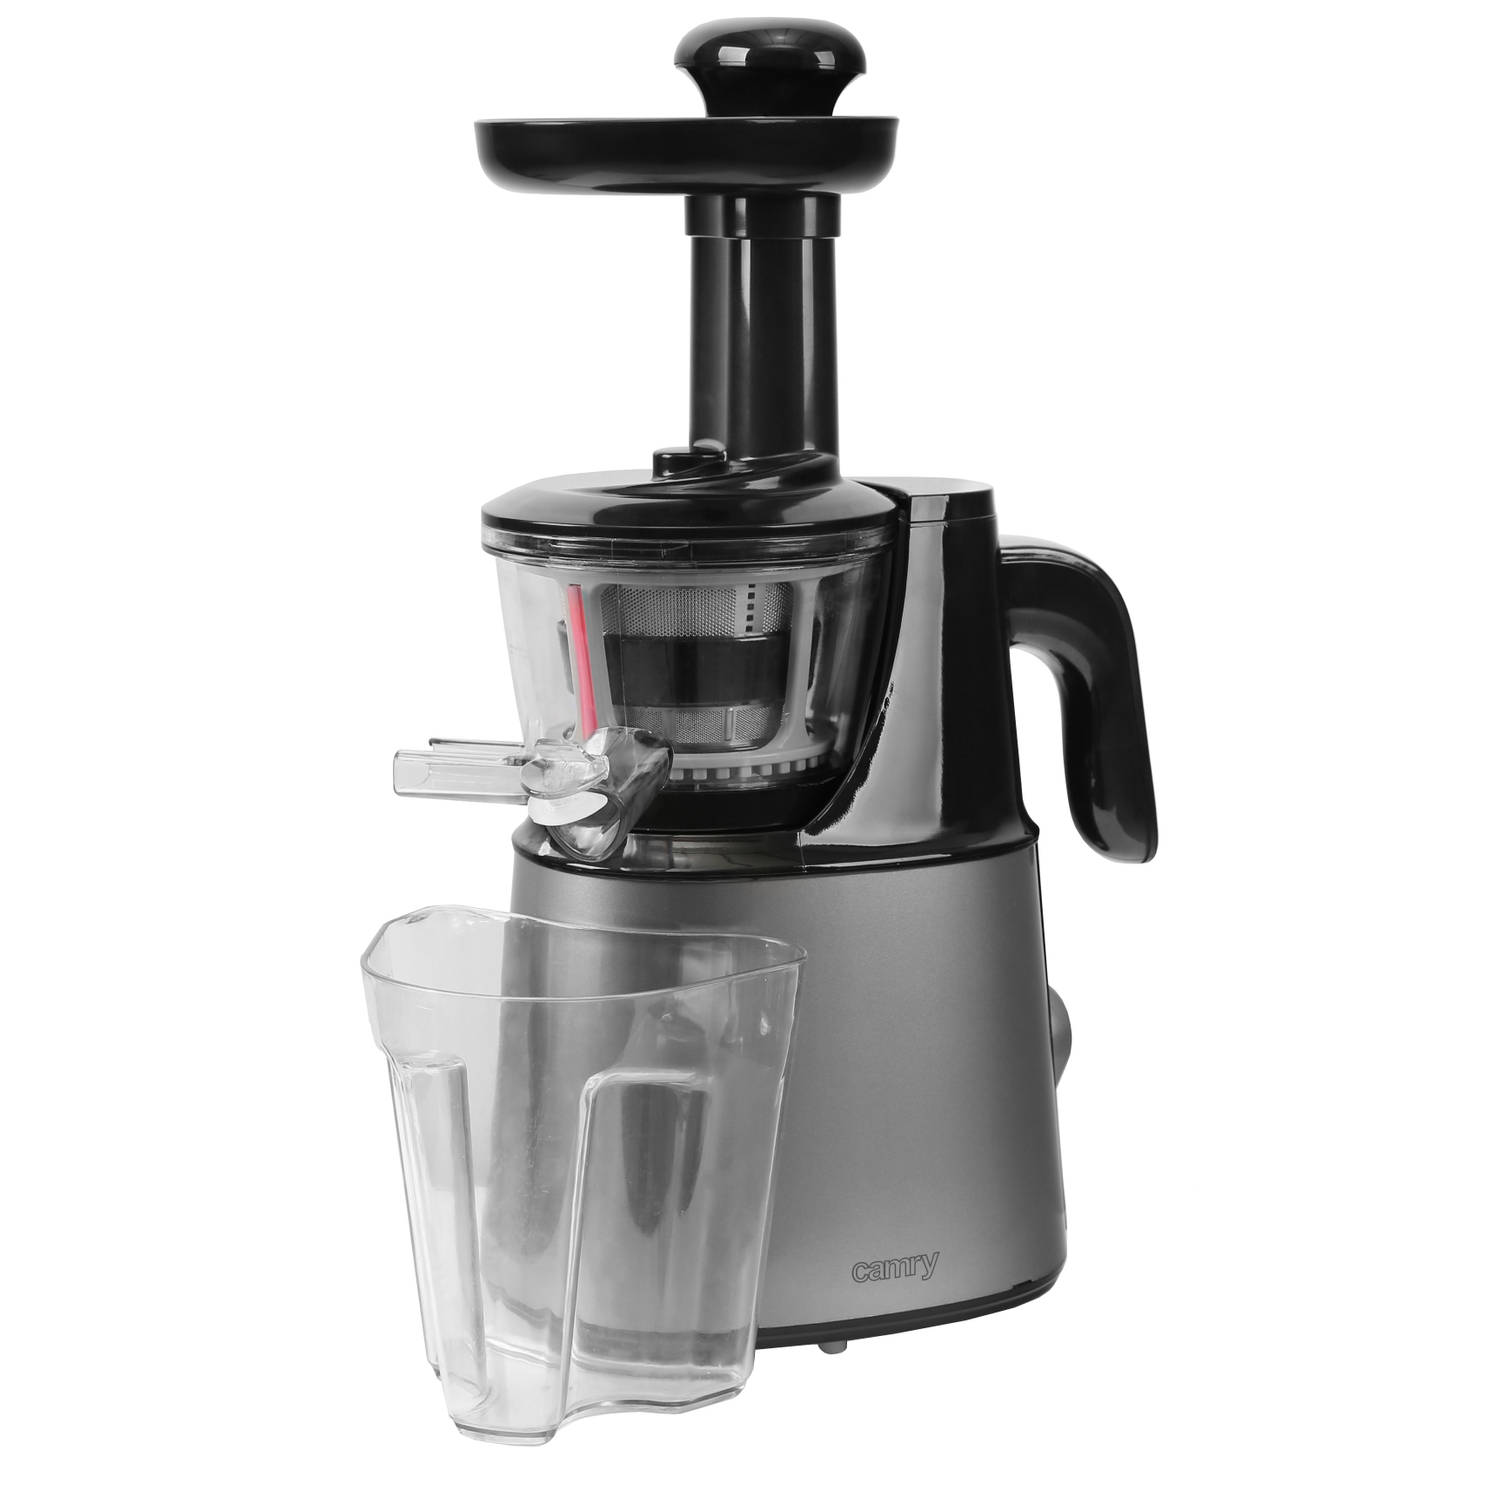 Camry CR4120 Slowjuicer